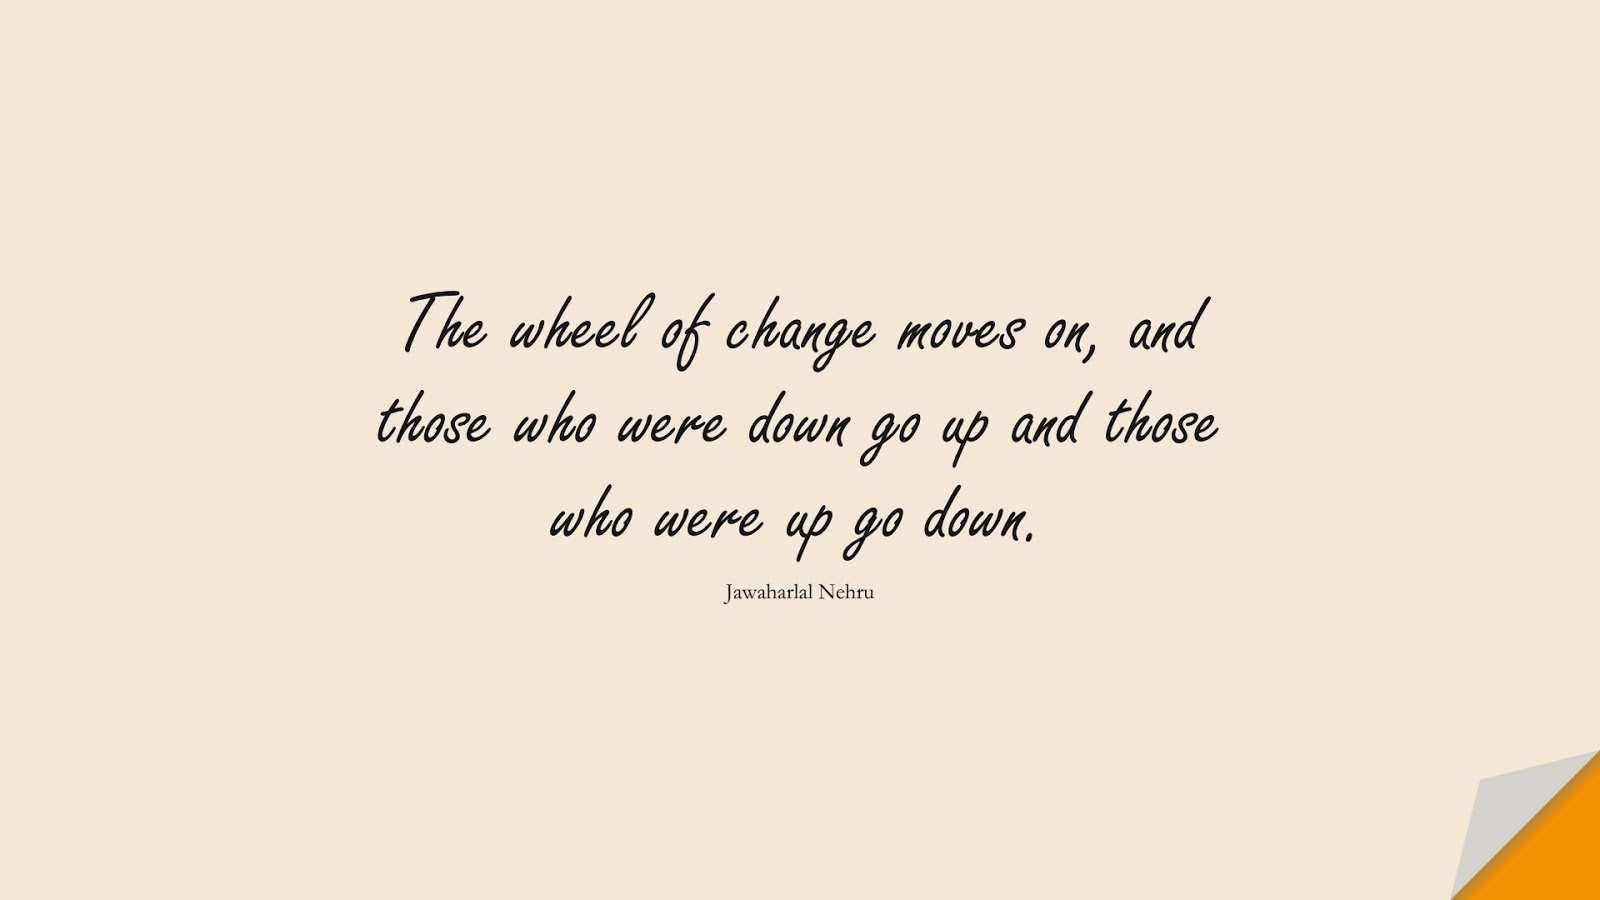 The wheel of change moves on, and those who were down go up and those who were up go down. (Jawaharlal Nehru);  #ChangeQuotes